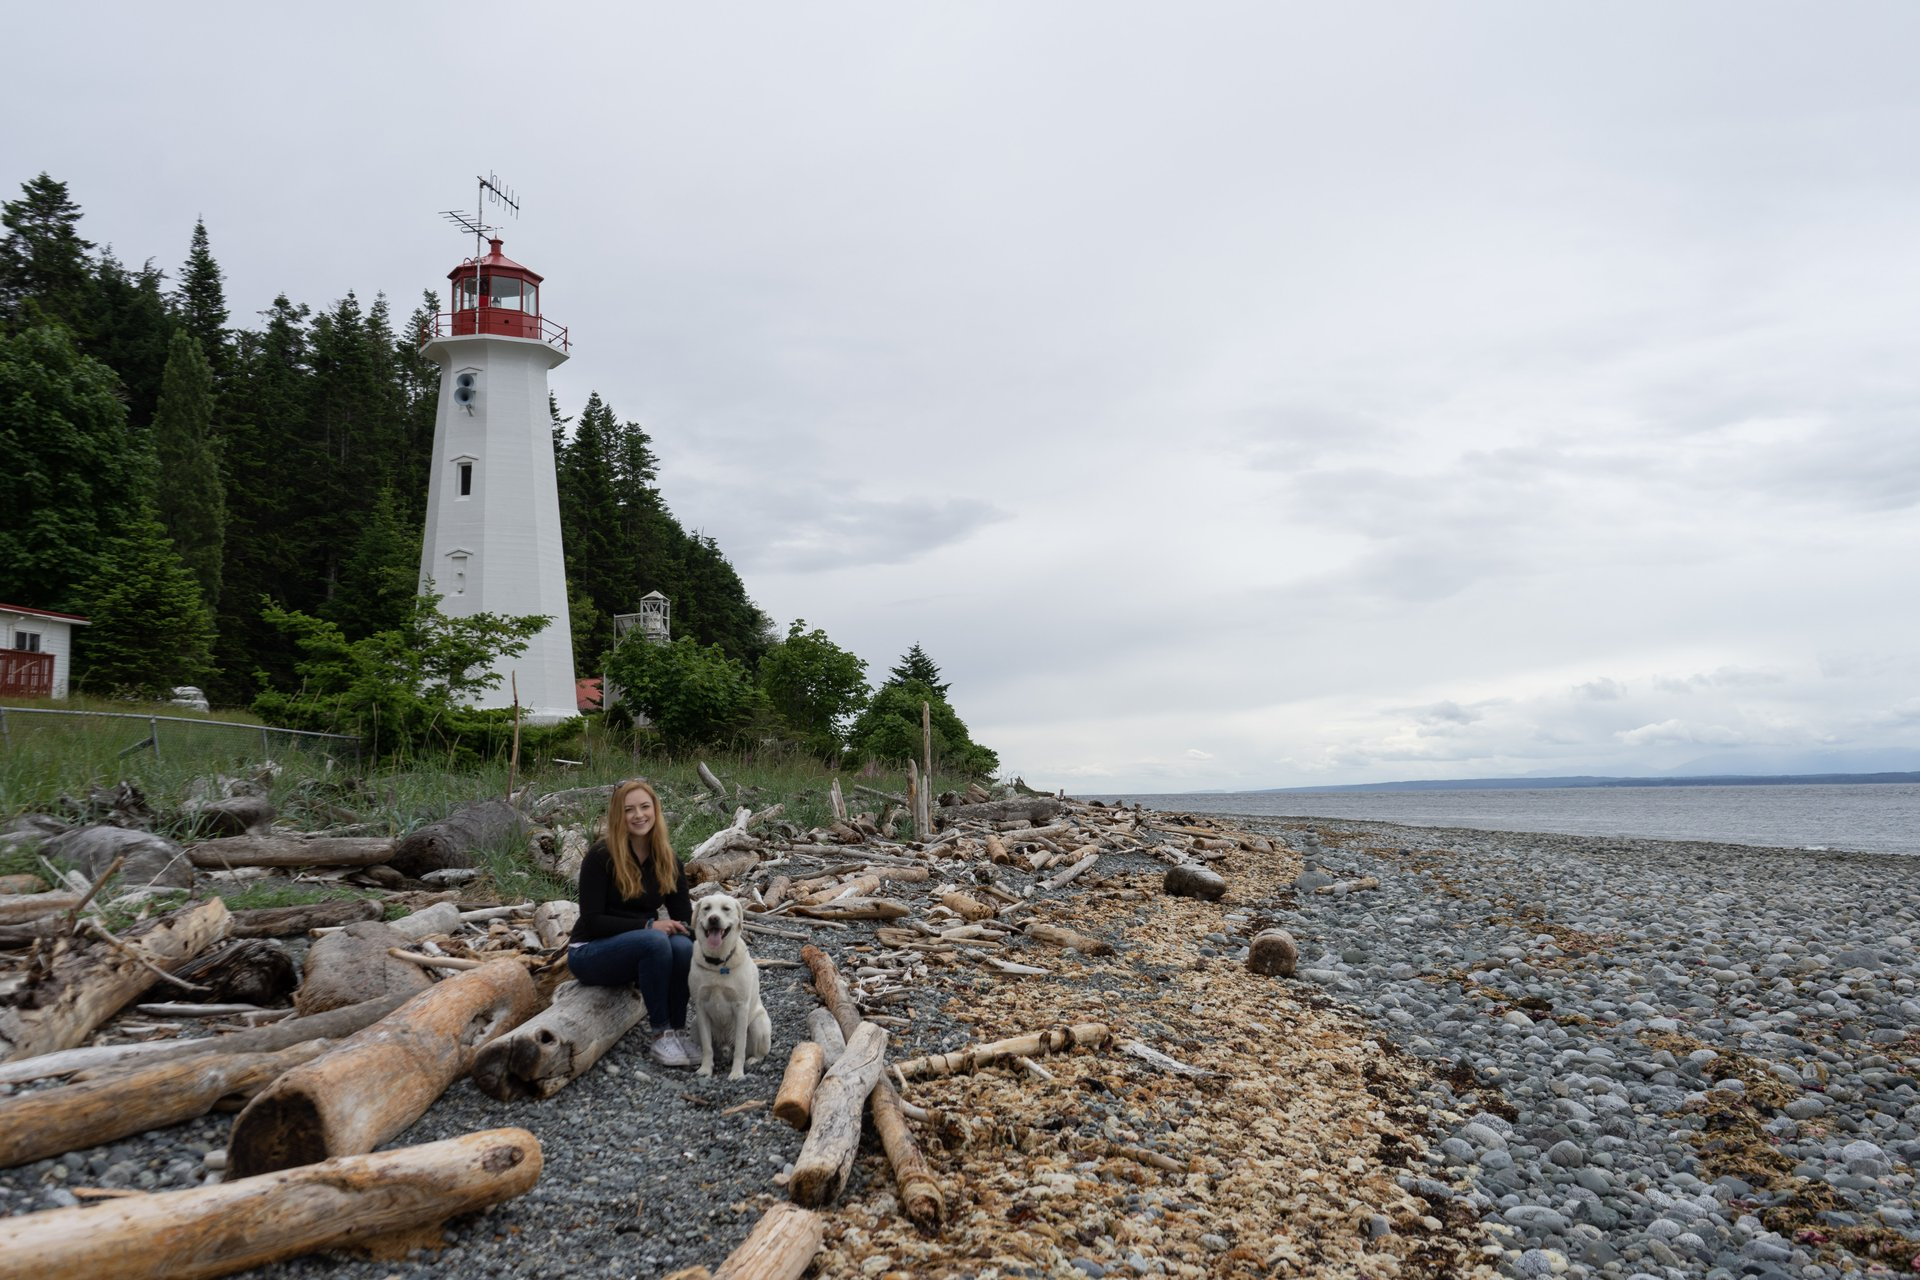 a woman and her dog sit on the beach with the Cape Mudge Lighthouse behind them